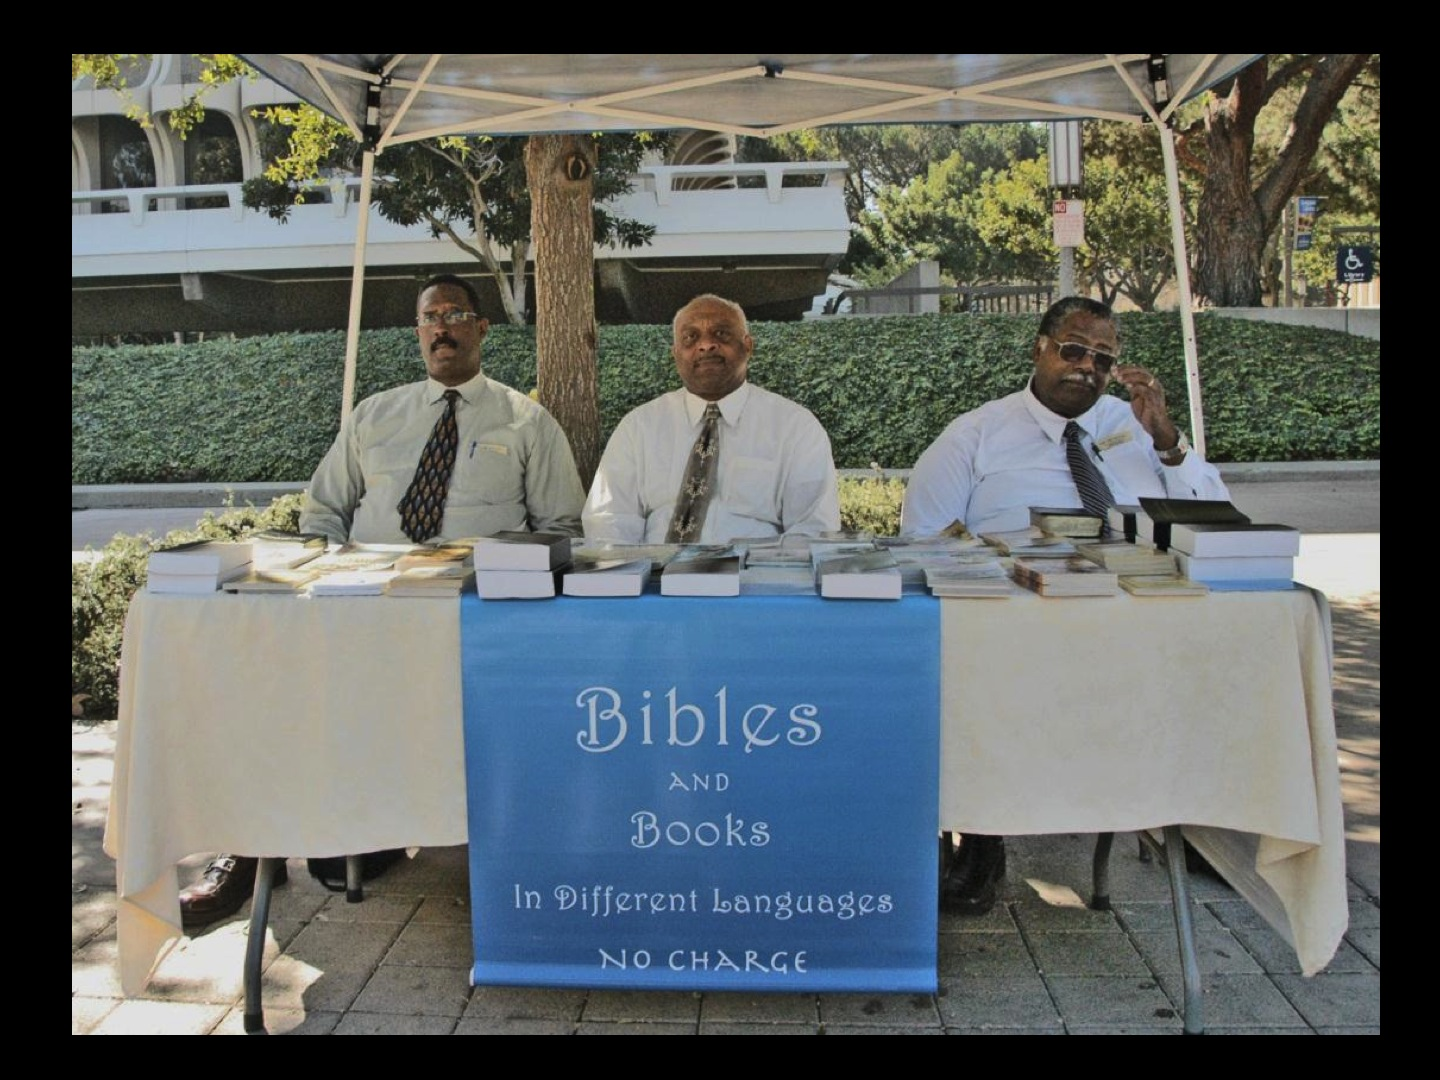 Bibles and Books